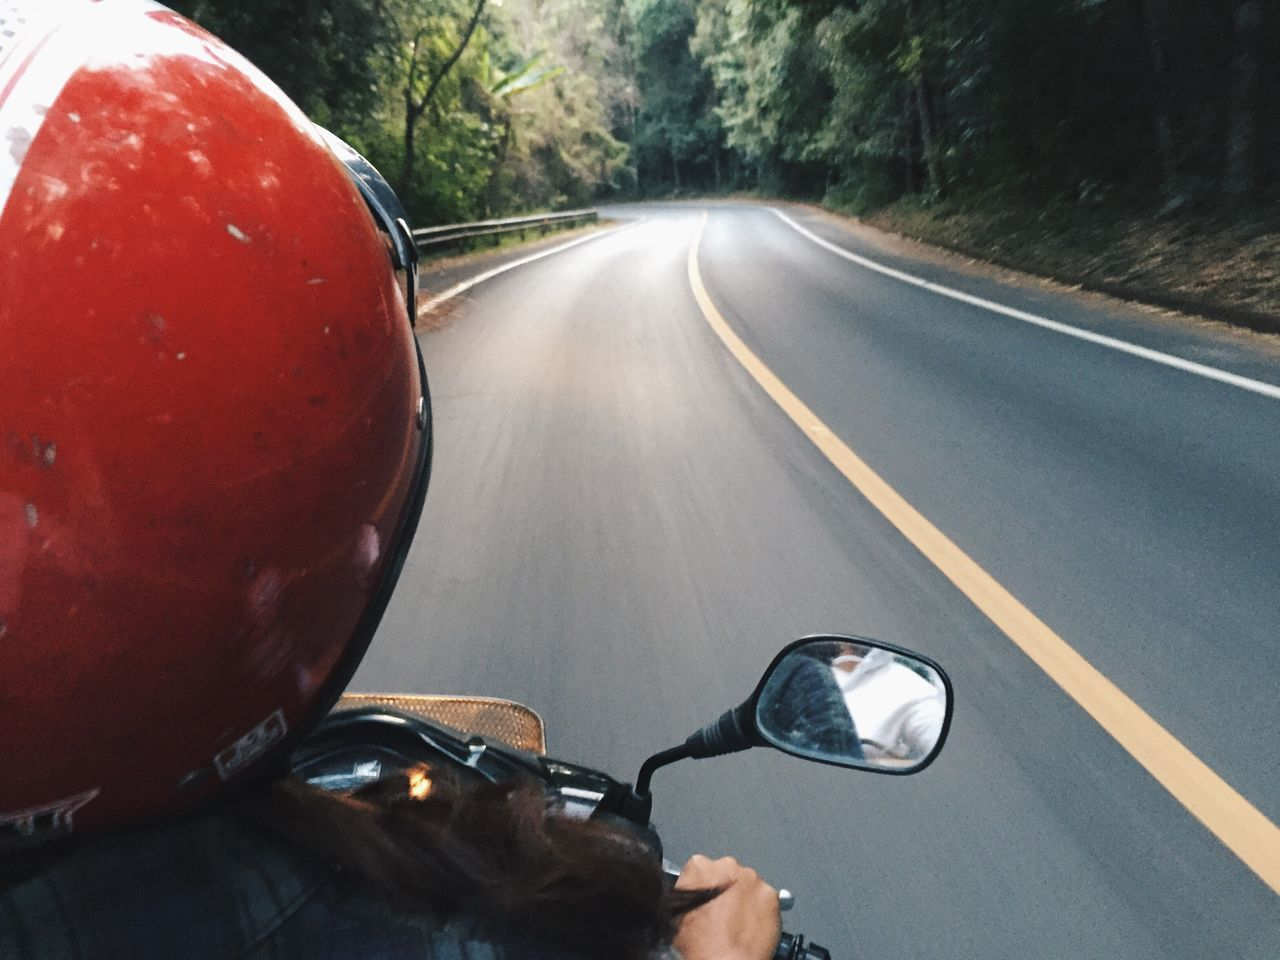 Rear view of woman riding scooter